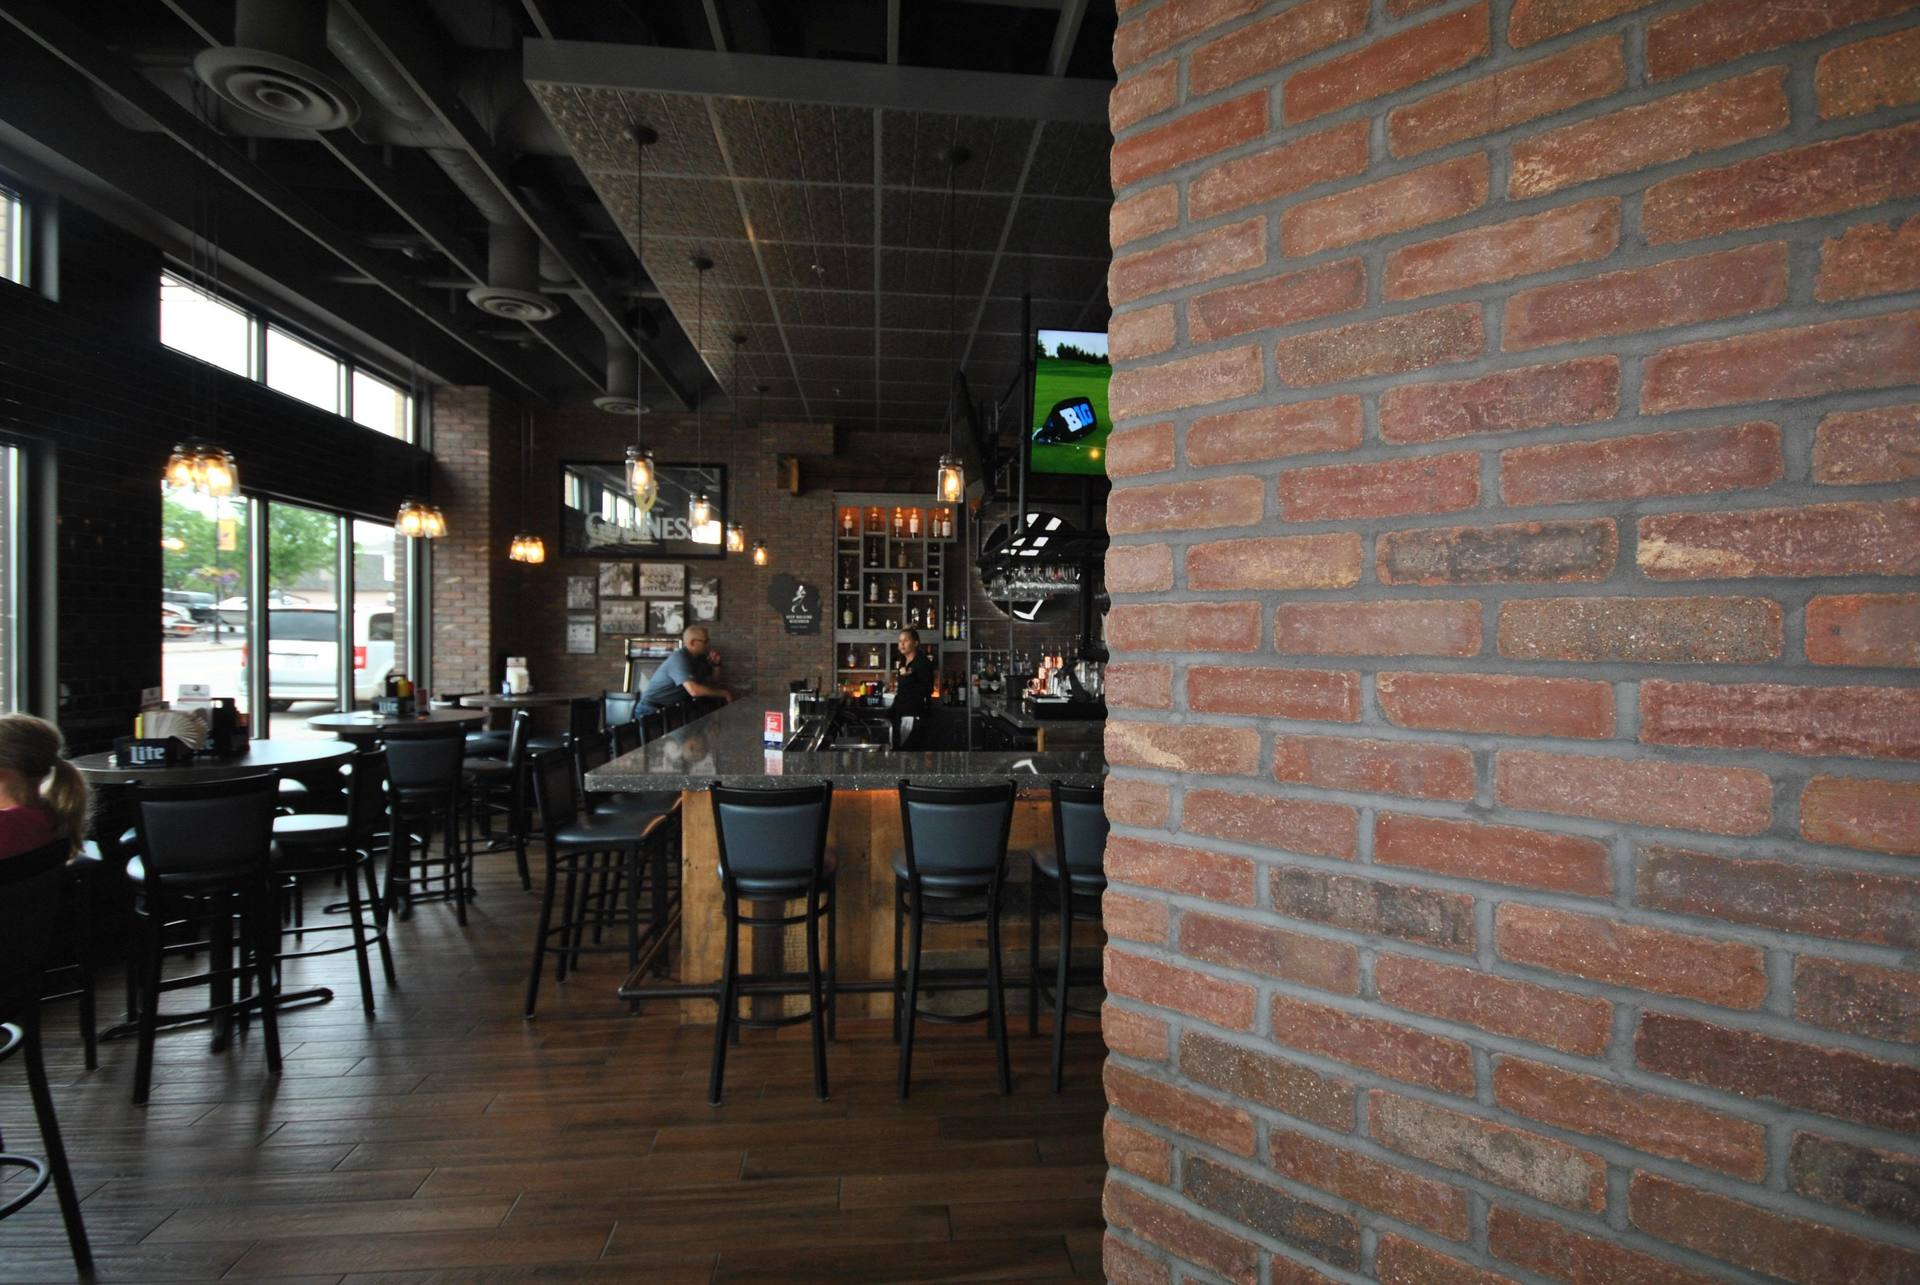 Speedymason thin brick system provides tasteful character to David Reay's Diner and Tavern dining area.